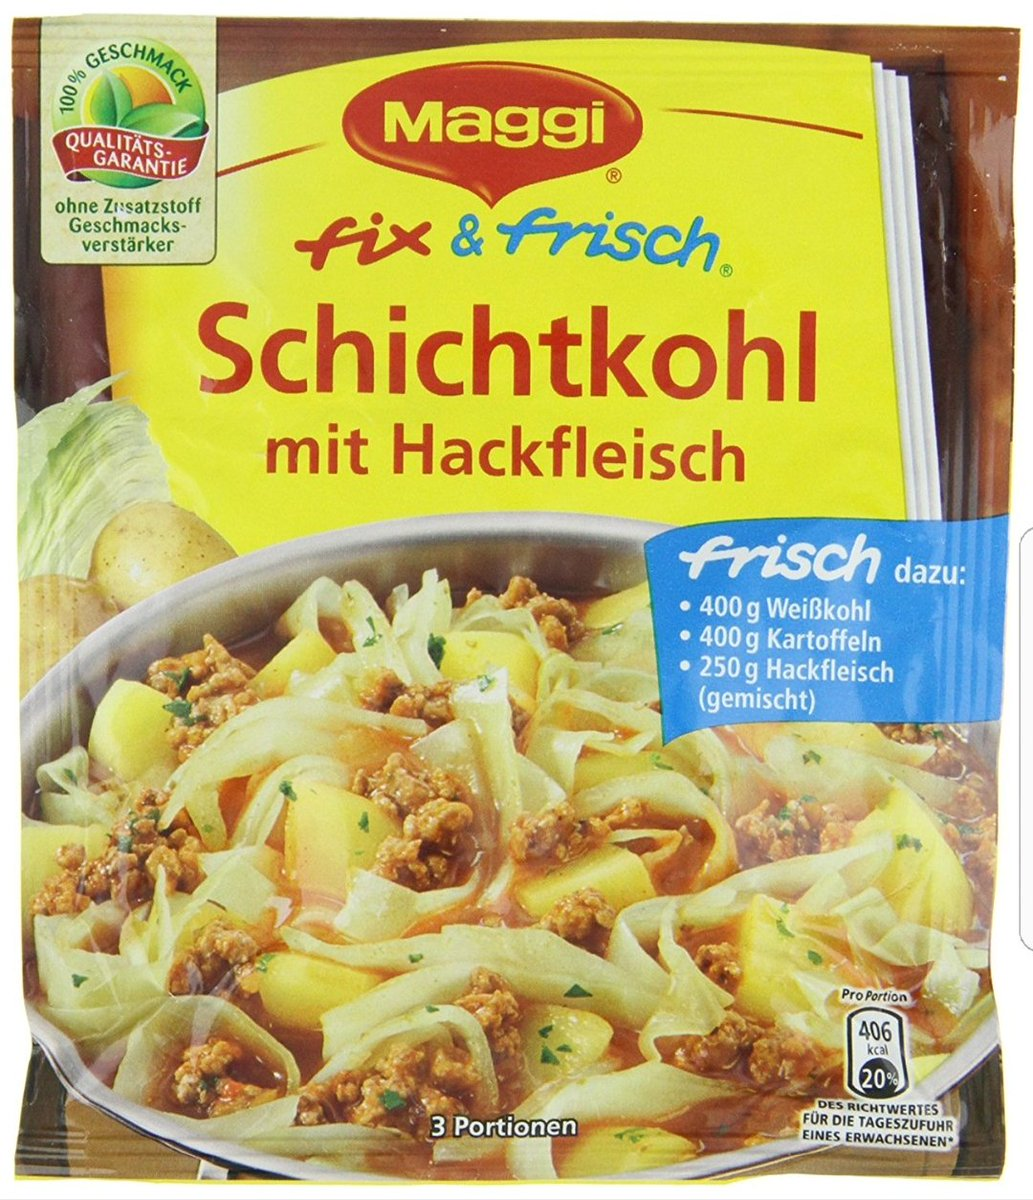 test Twitter Media - RT @bomelino: Maggi Fix Tüten, die man zu Guantanamera singen kann. https://t.co/O9nrSduM6a